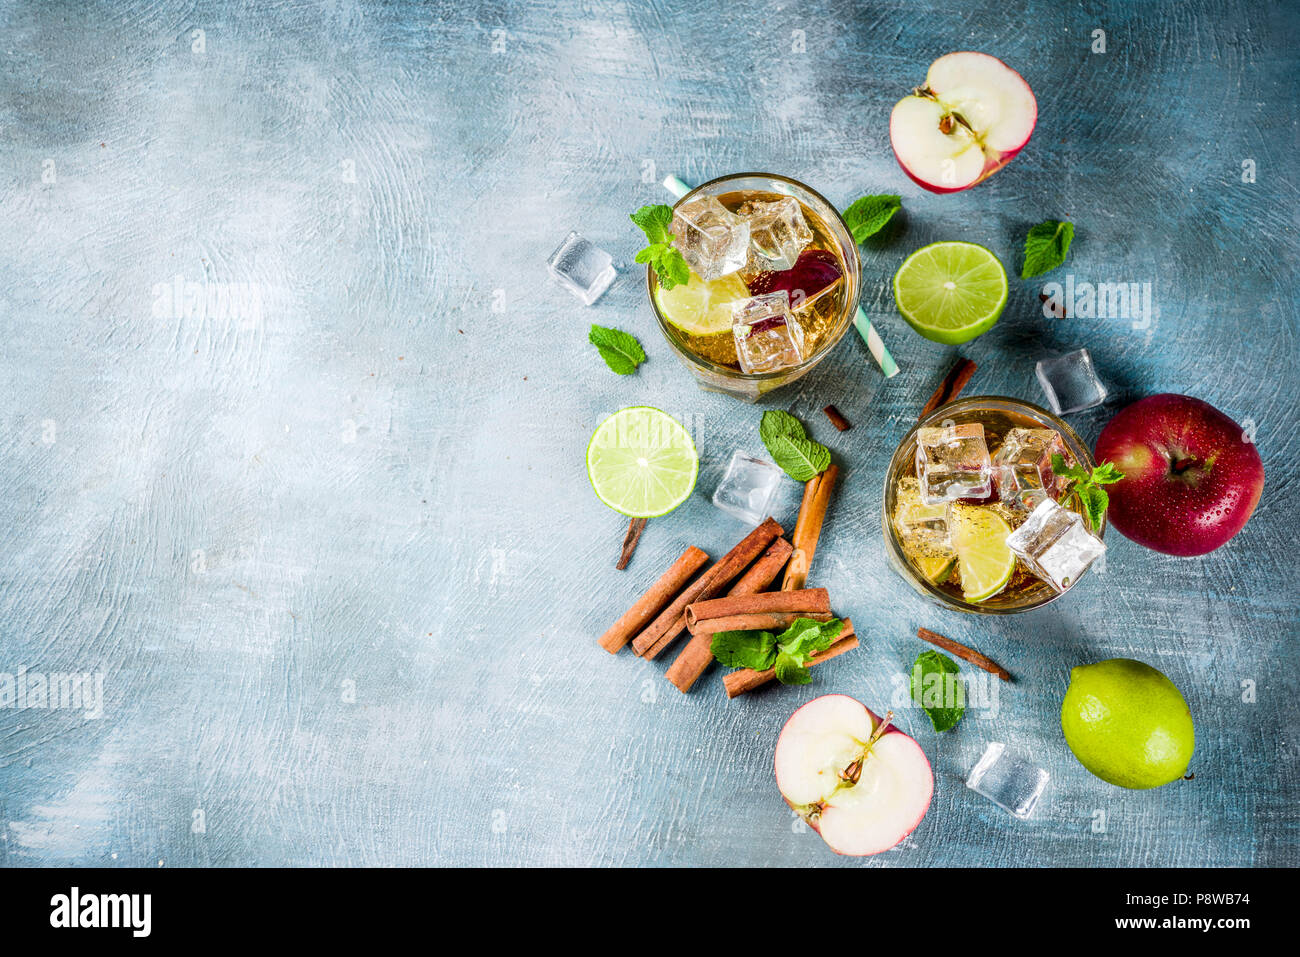 Spicy cinnamon apple iced tea or lemonade cocktail, summer refreshment drink, blue background copy space - Stock Image